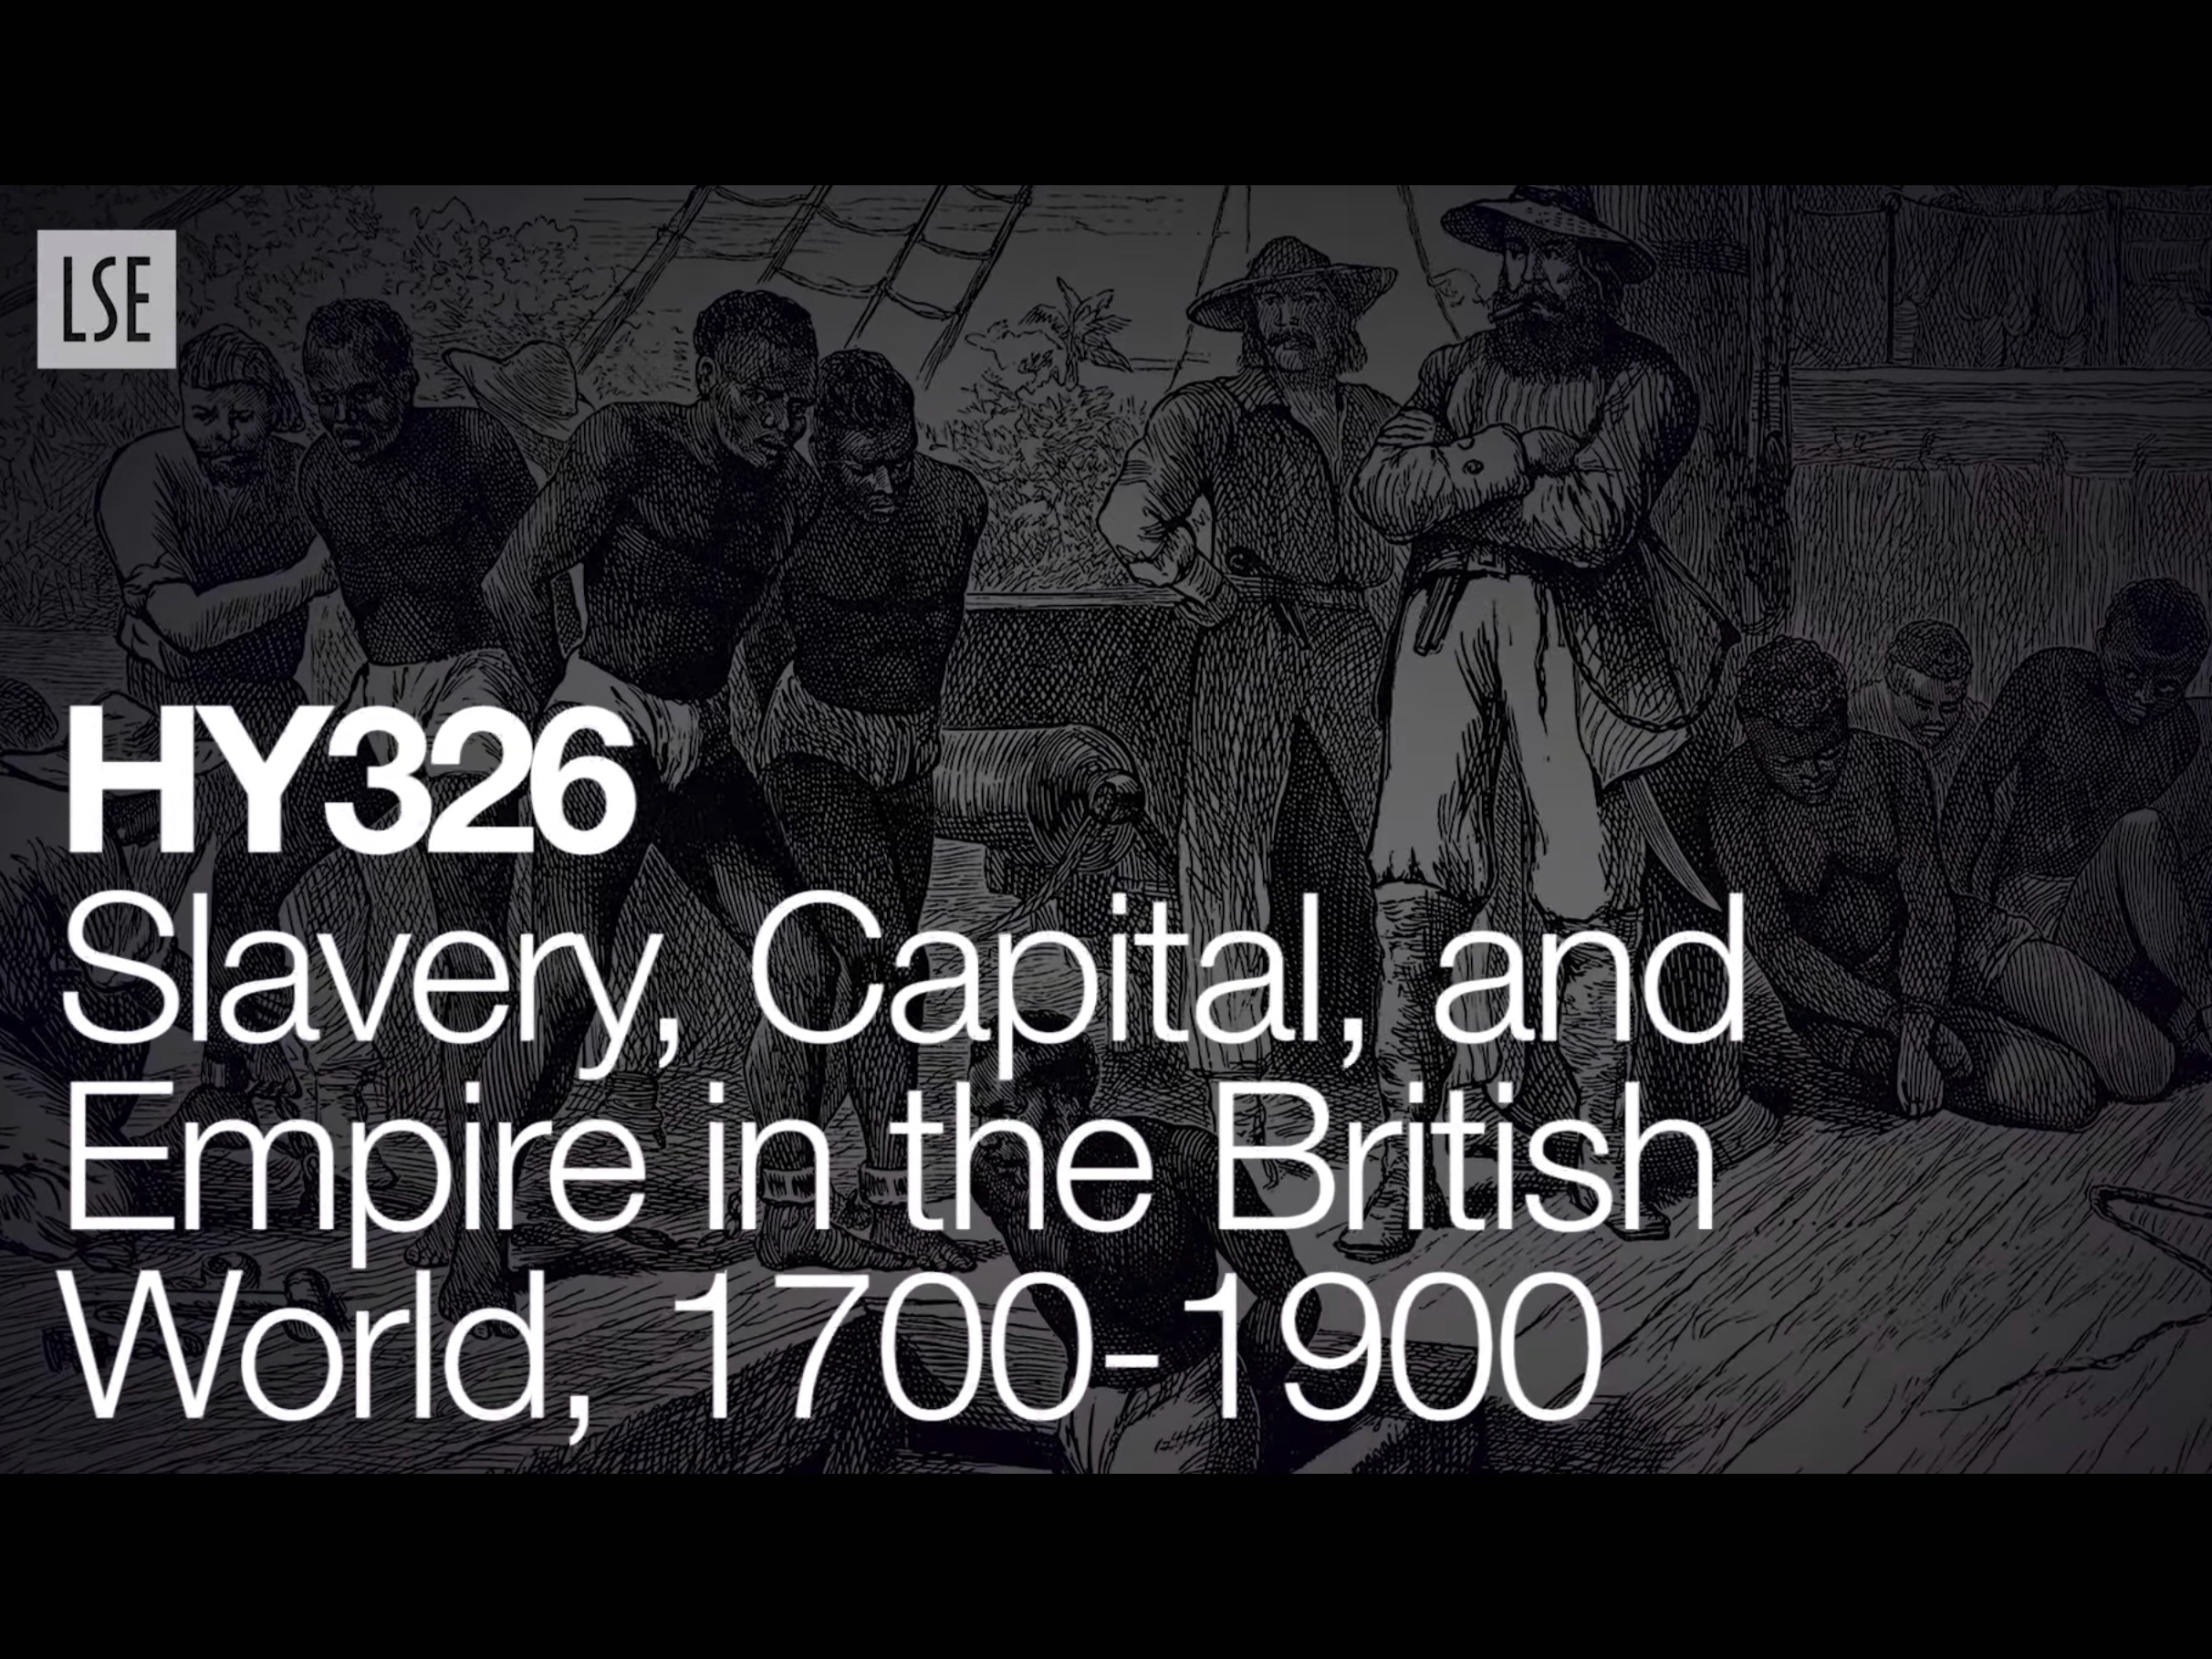 HY326: Slavery, Capital, and Empire in the British World, 1700-1900